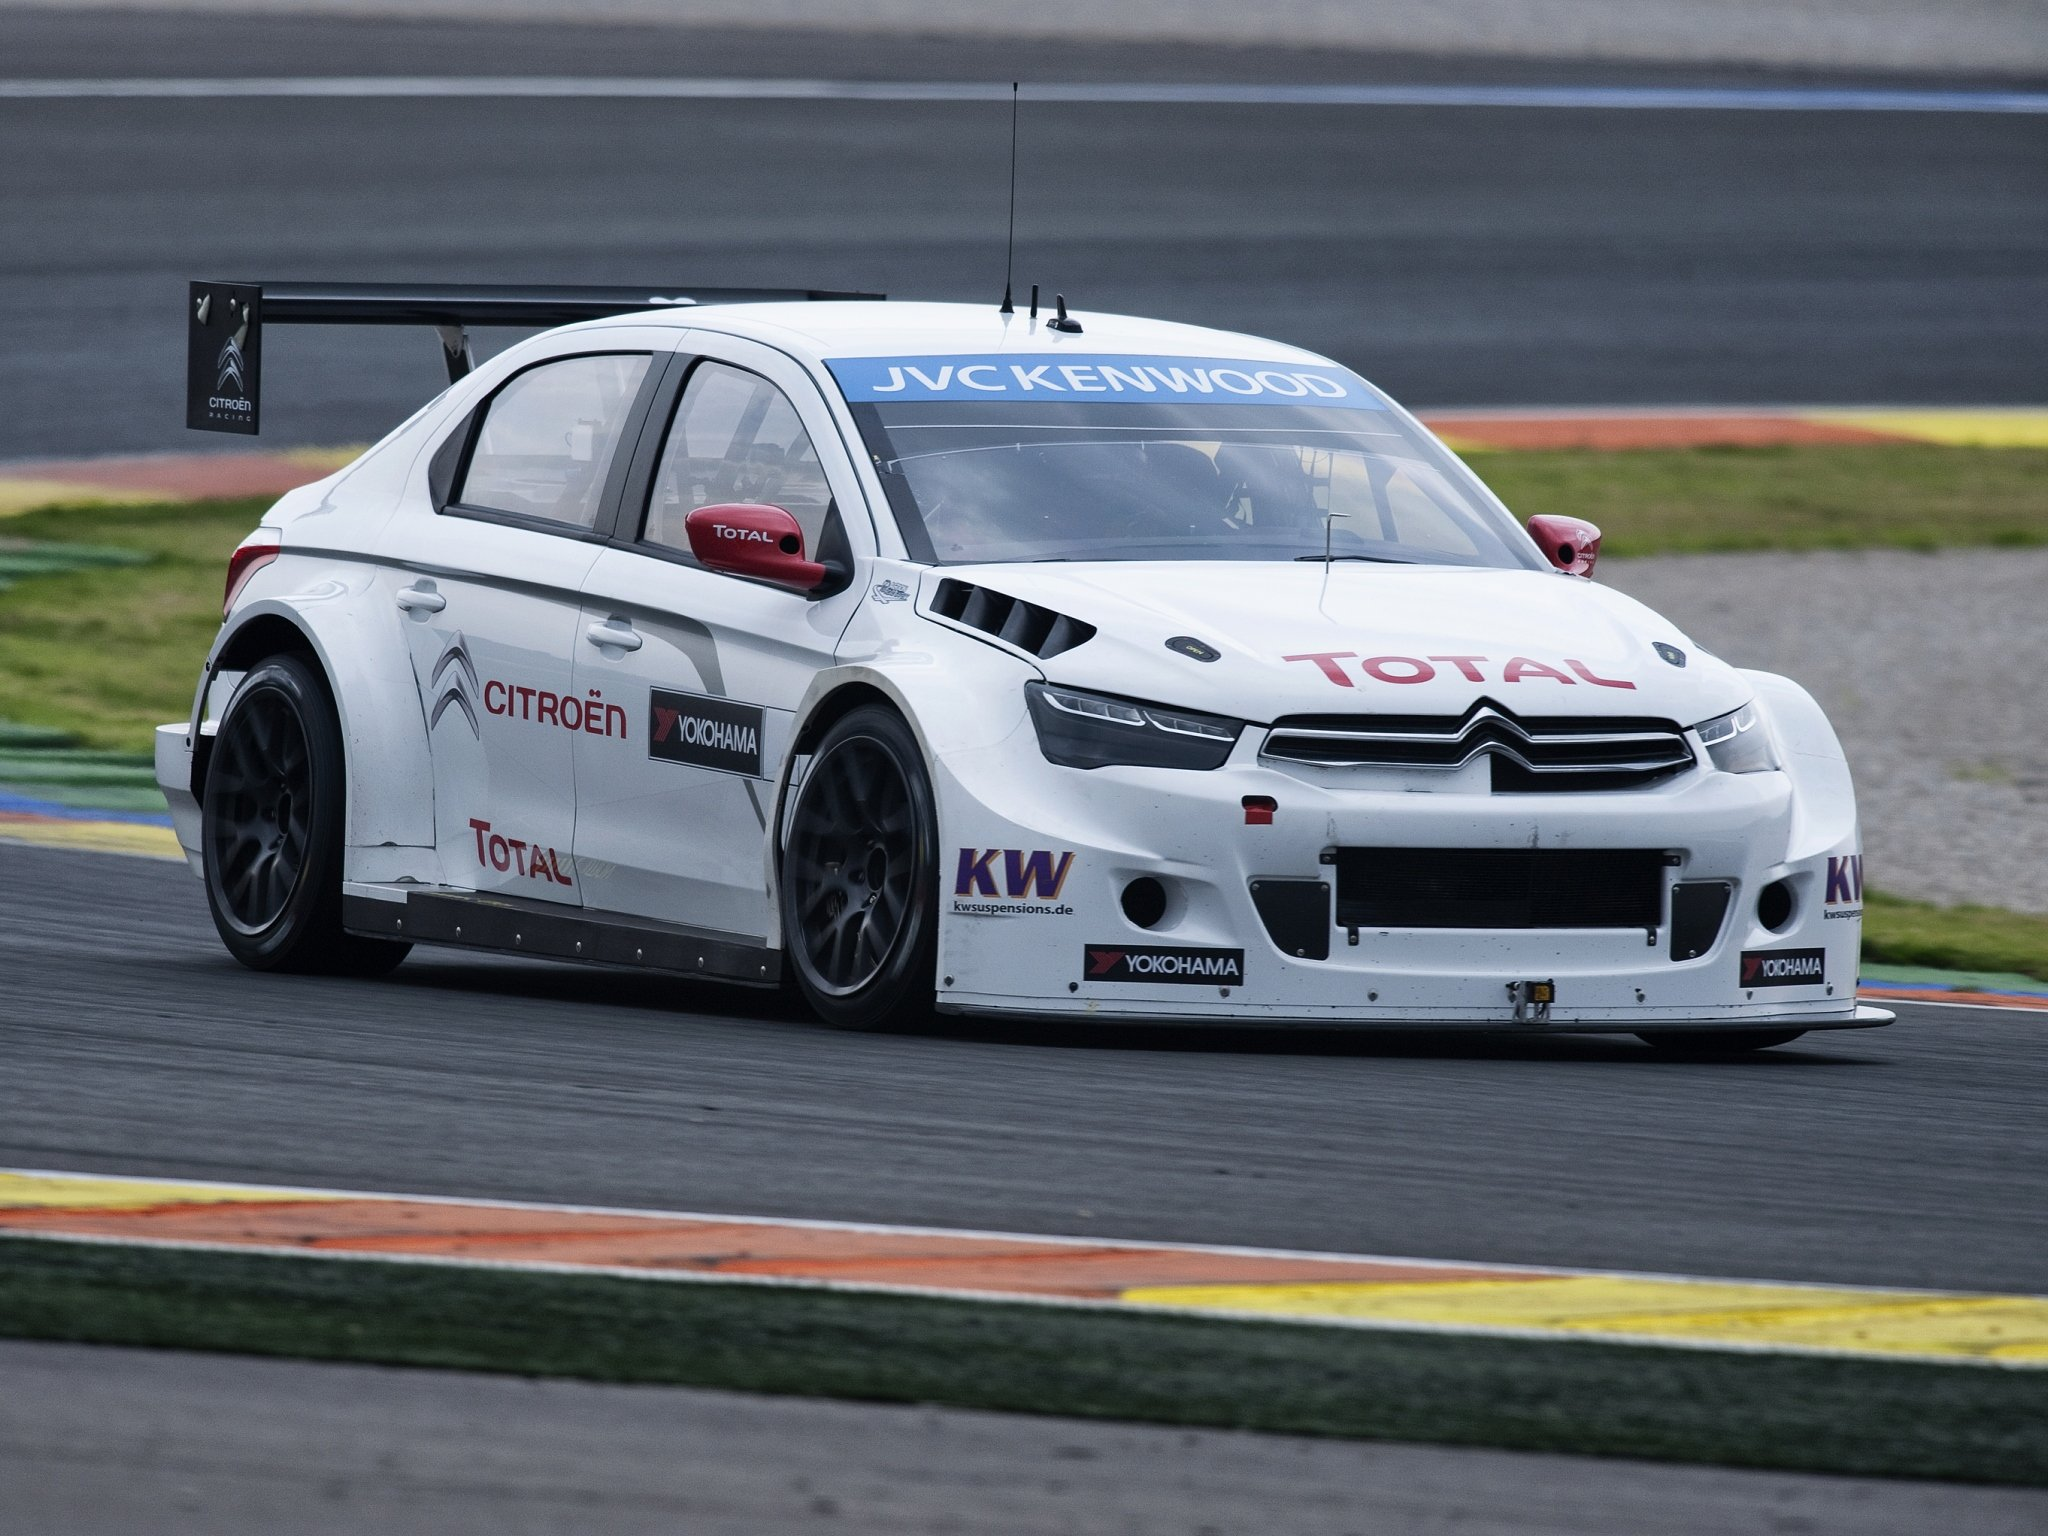 2048x1536 - WTCC Racing Wallpapers 15